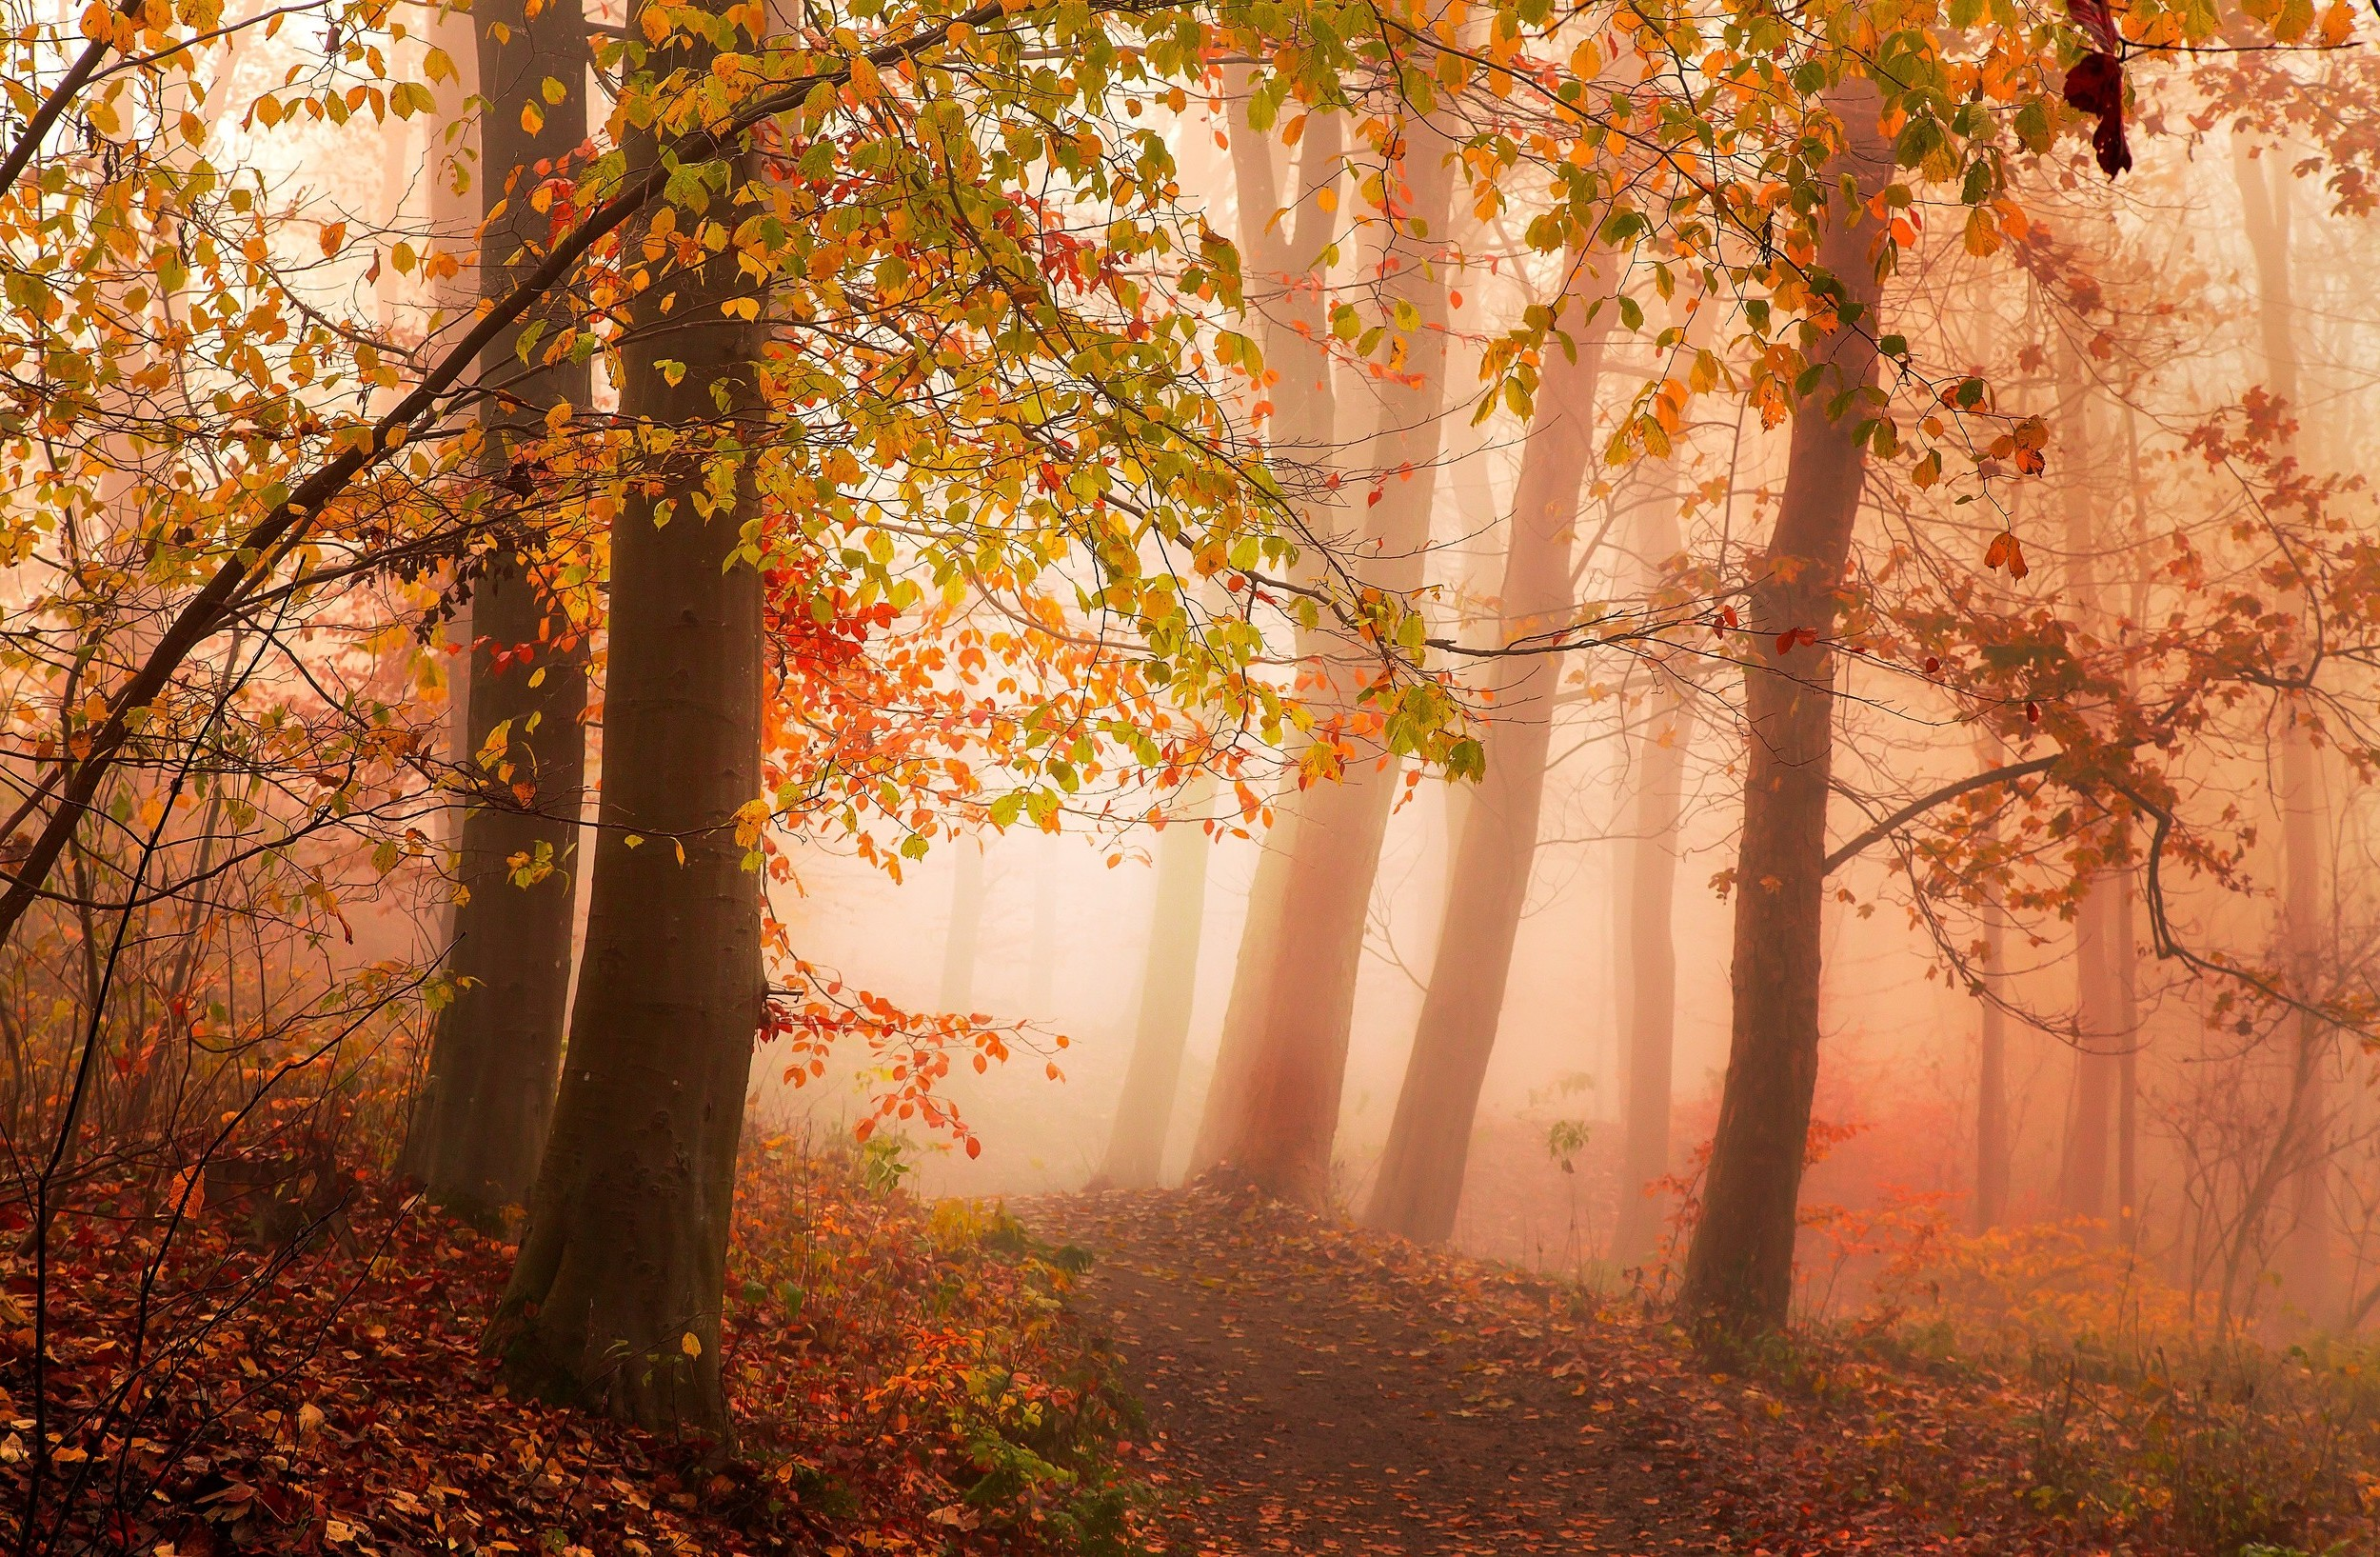 Rustic Fall Wallpaper Photography Nature Landscape Morning Mist Sunlight